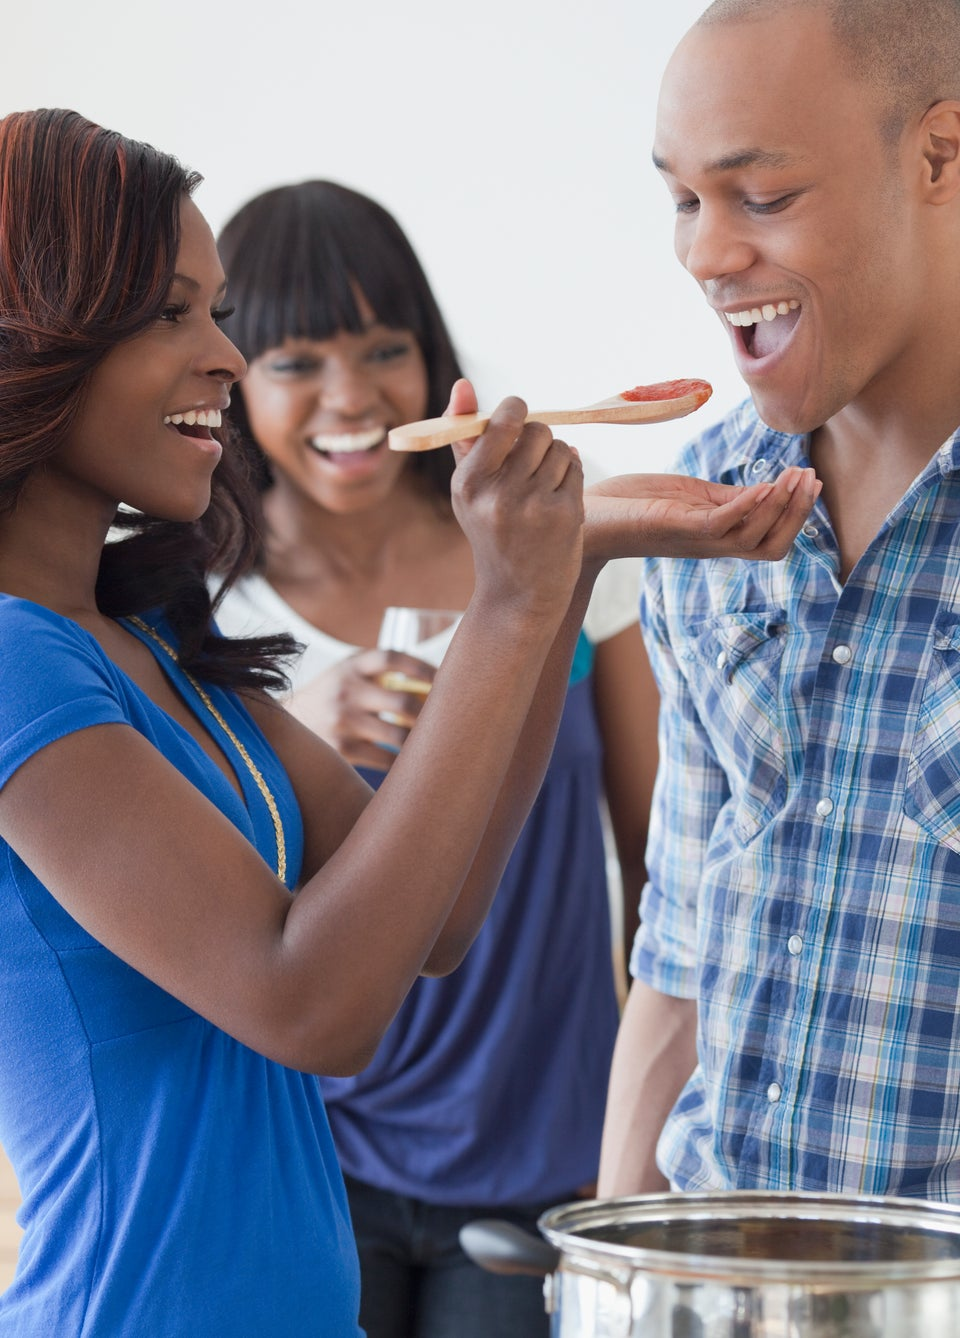 6 Things To Know About That Engagement Chicken Recipe Some Women Swear Will Make A Man Propose